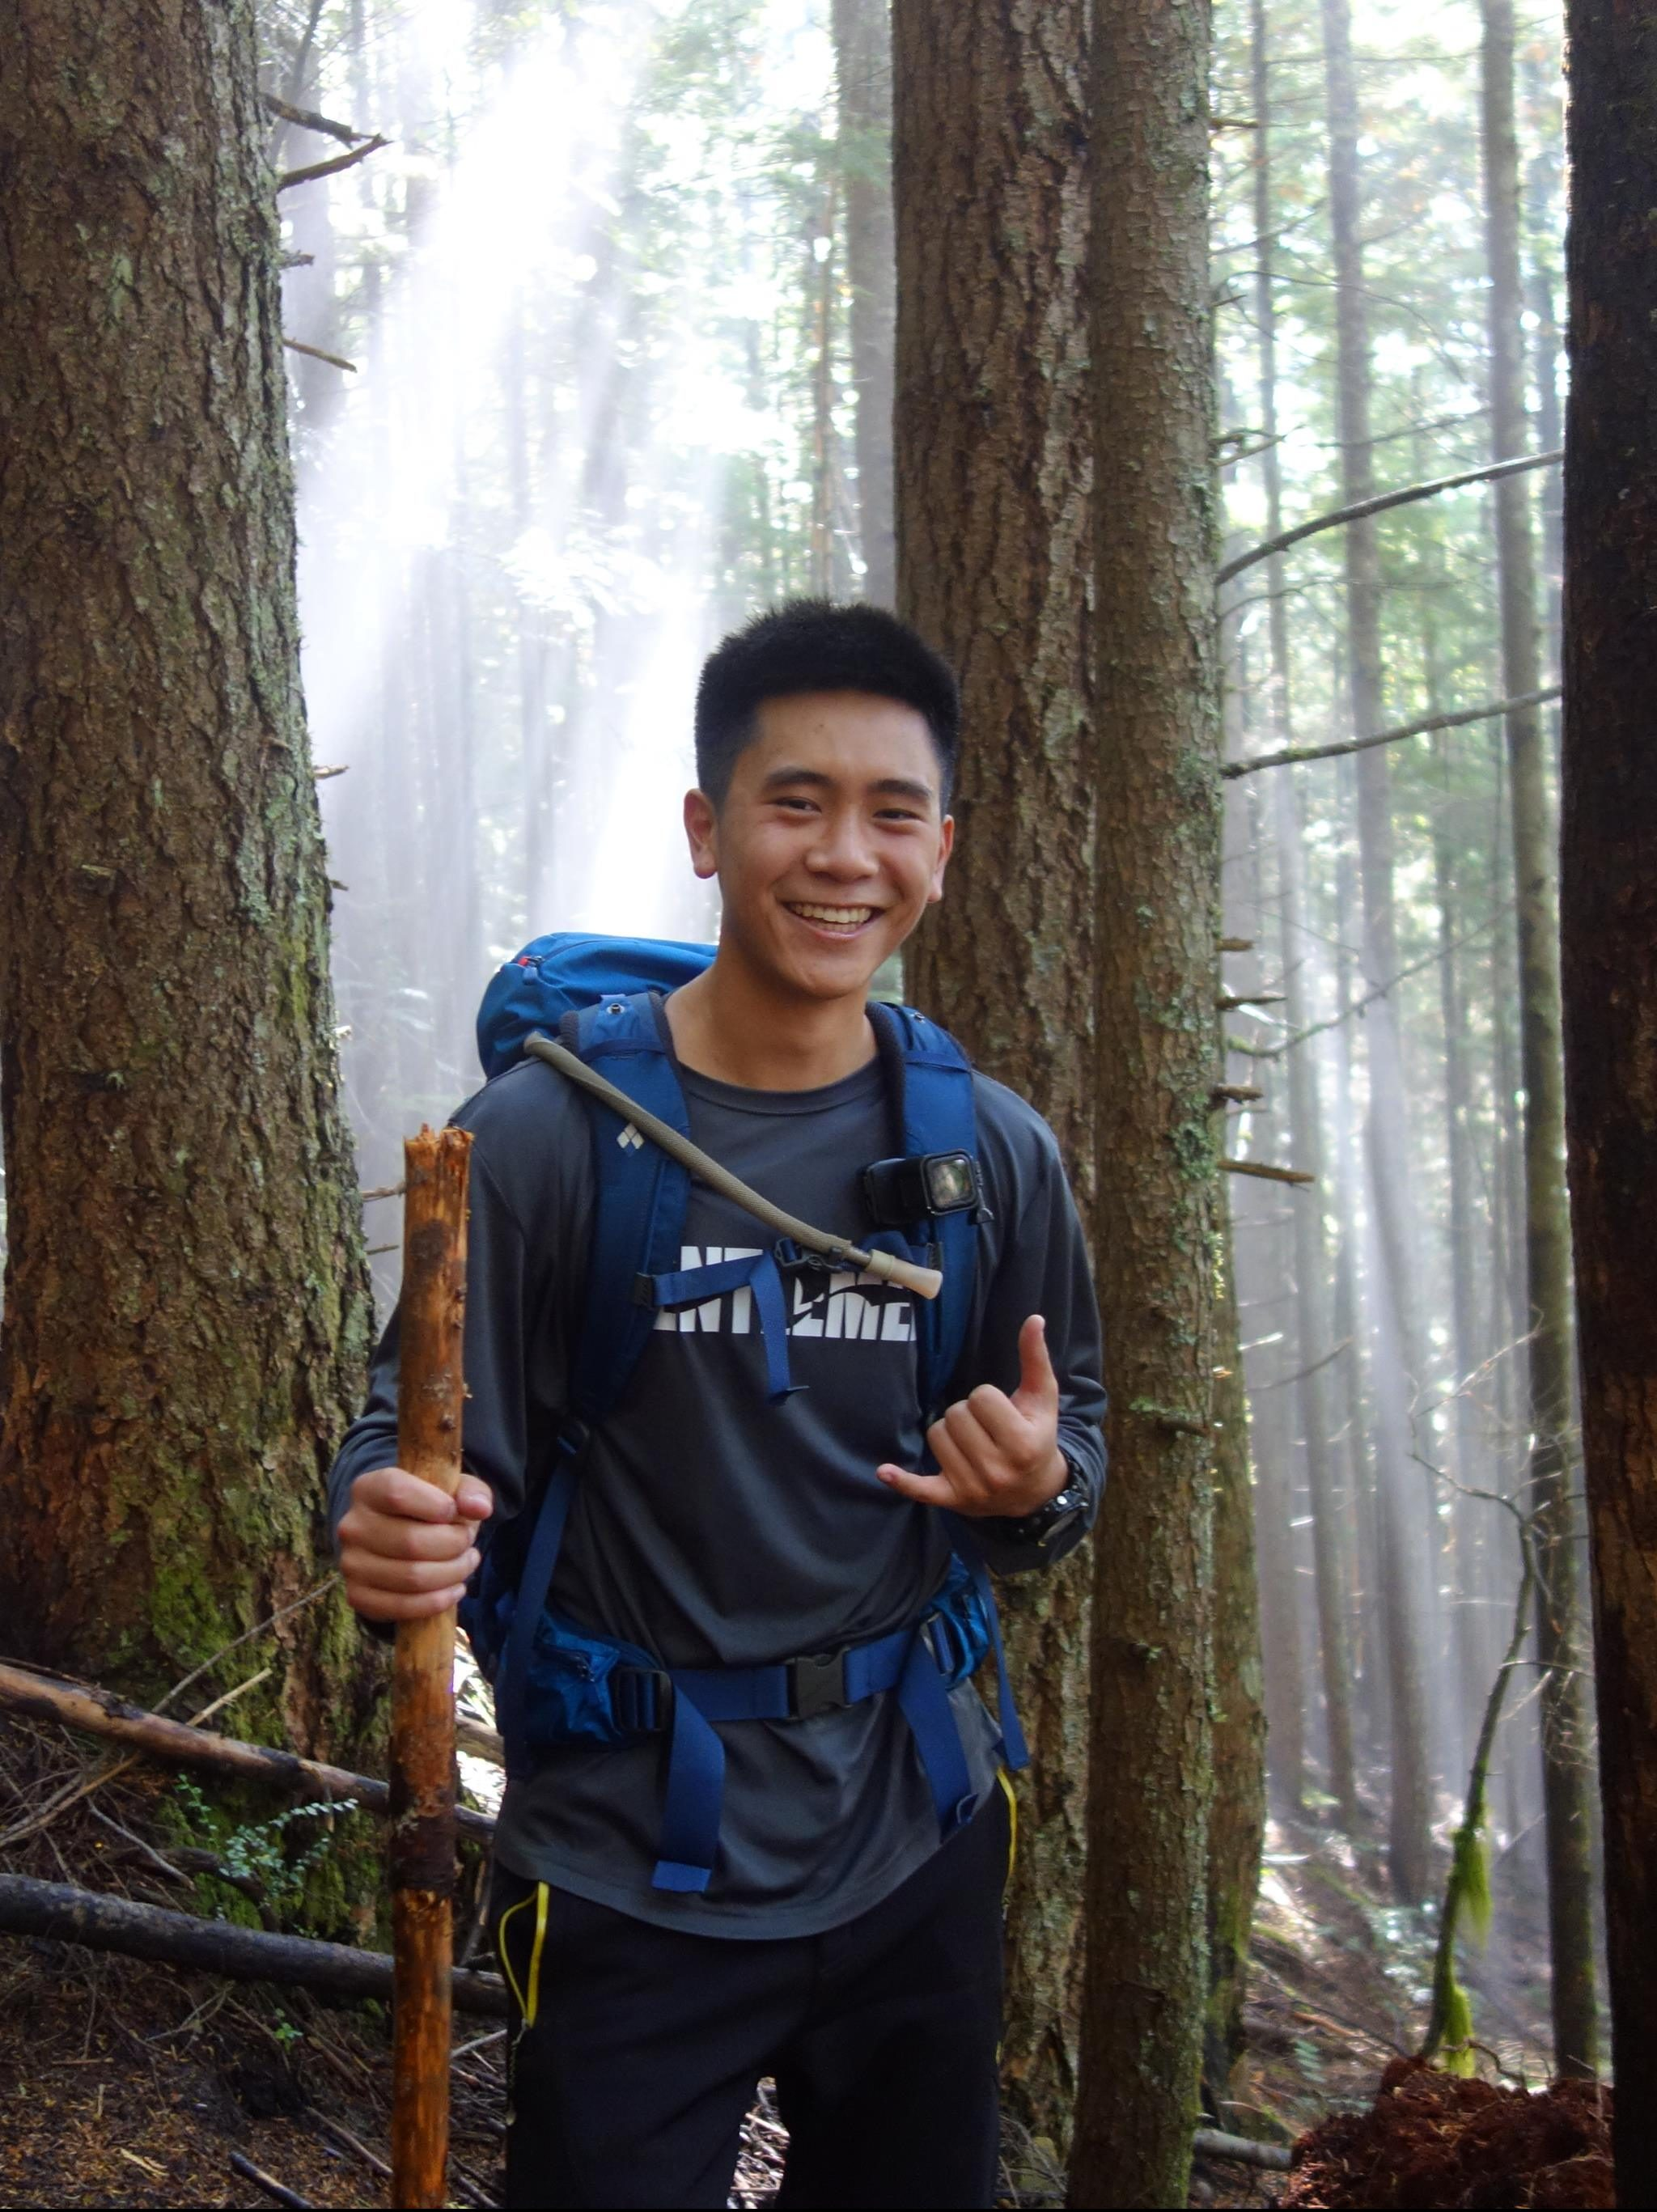 Devin Eng smiling in the forest